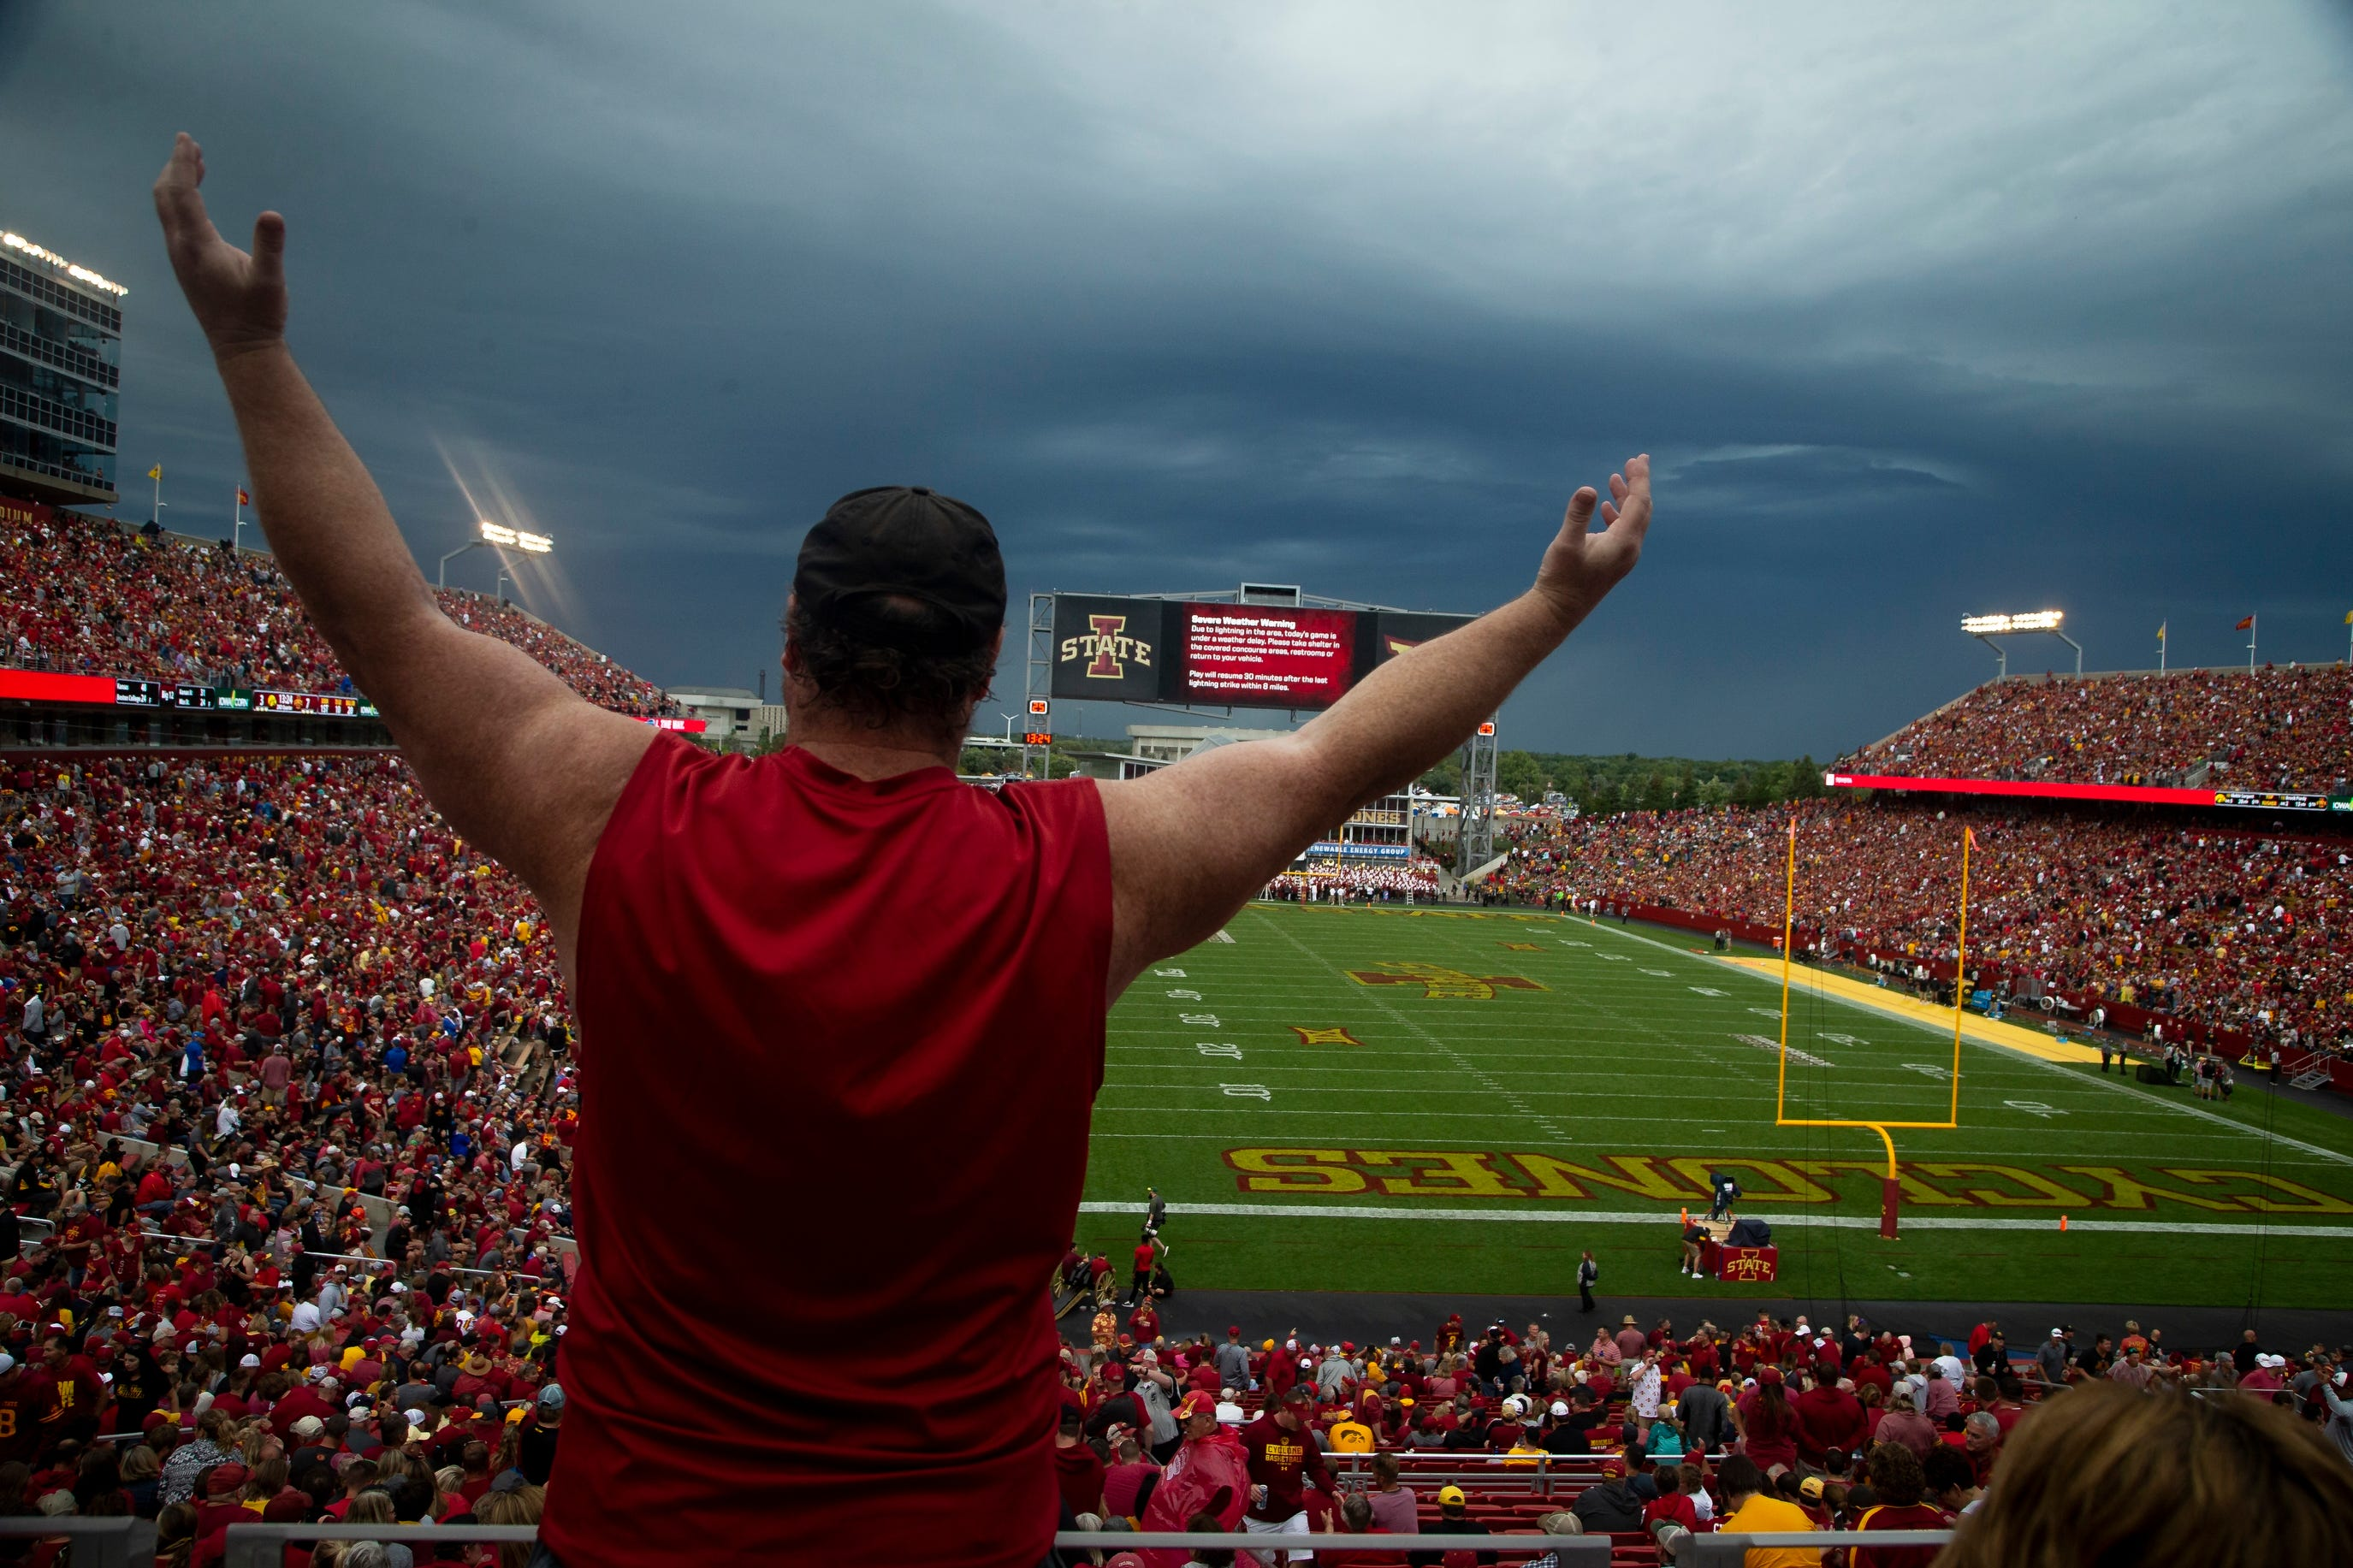 Jack Trice Stadium on the campus of Iowa State University has held that name since 1997. The moniker is for the school's first Black athlete, who died in 1923 from injuries suffered in his second varsity game against the University of Minnesota.